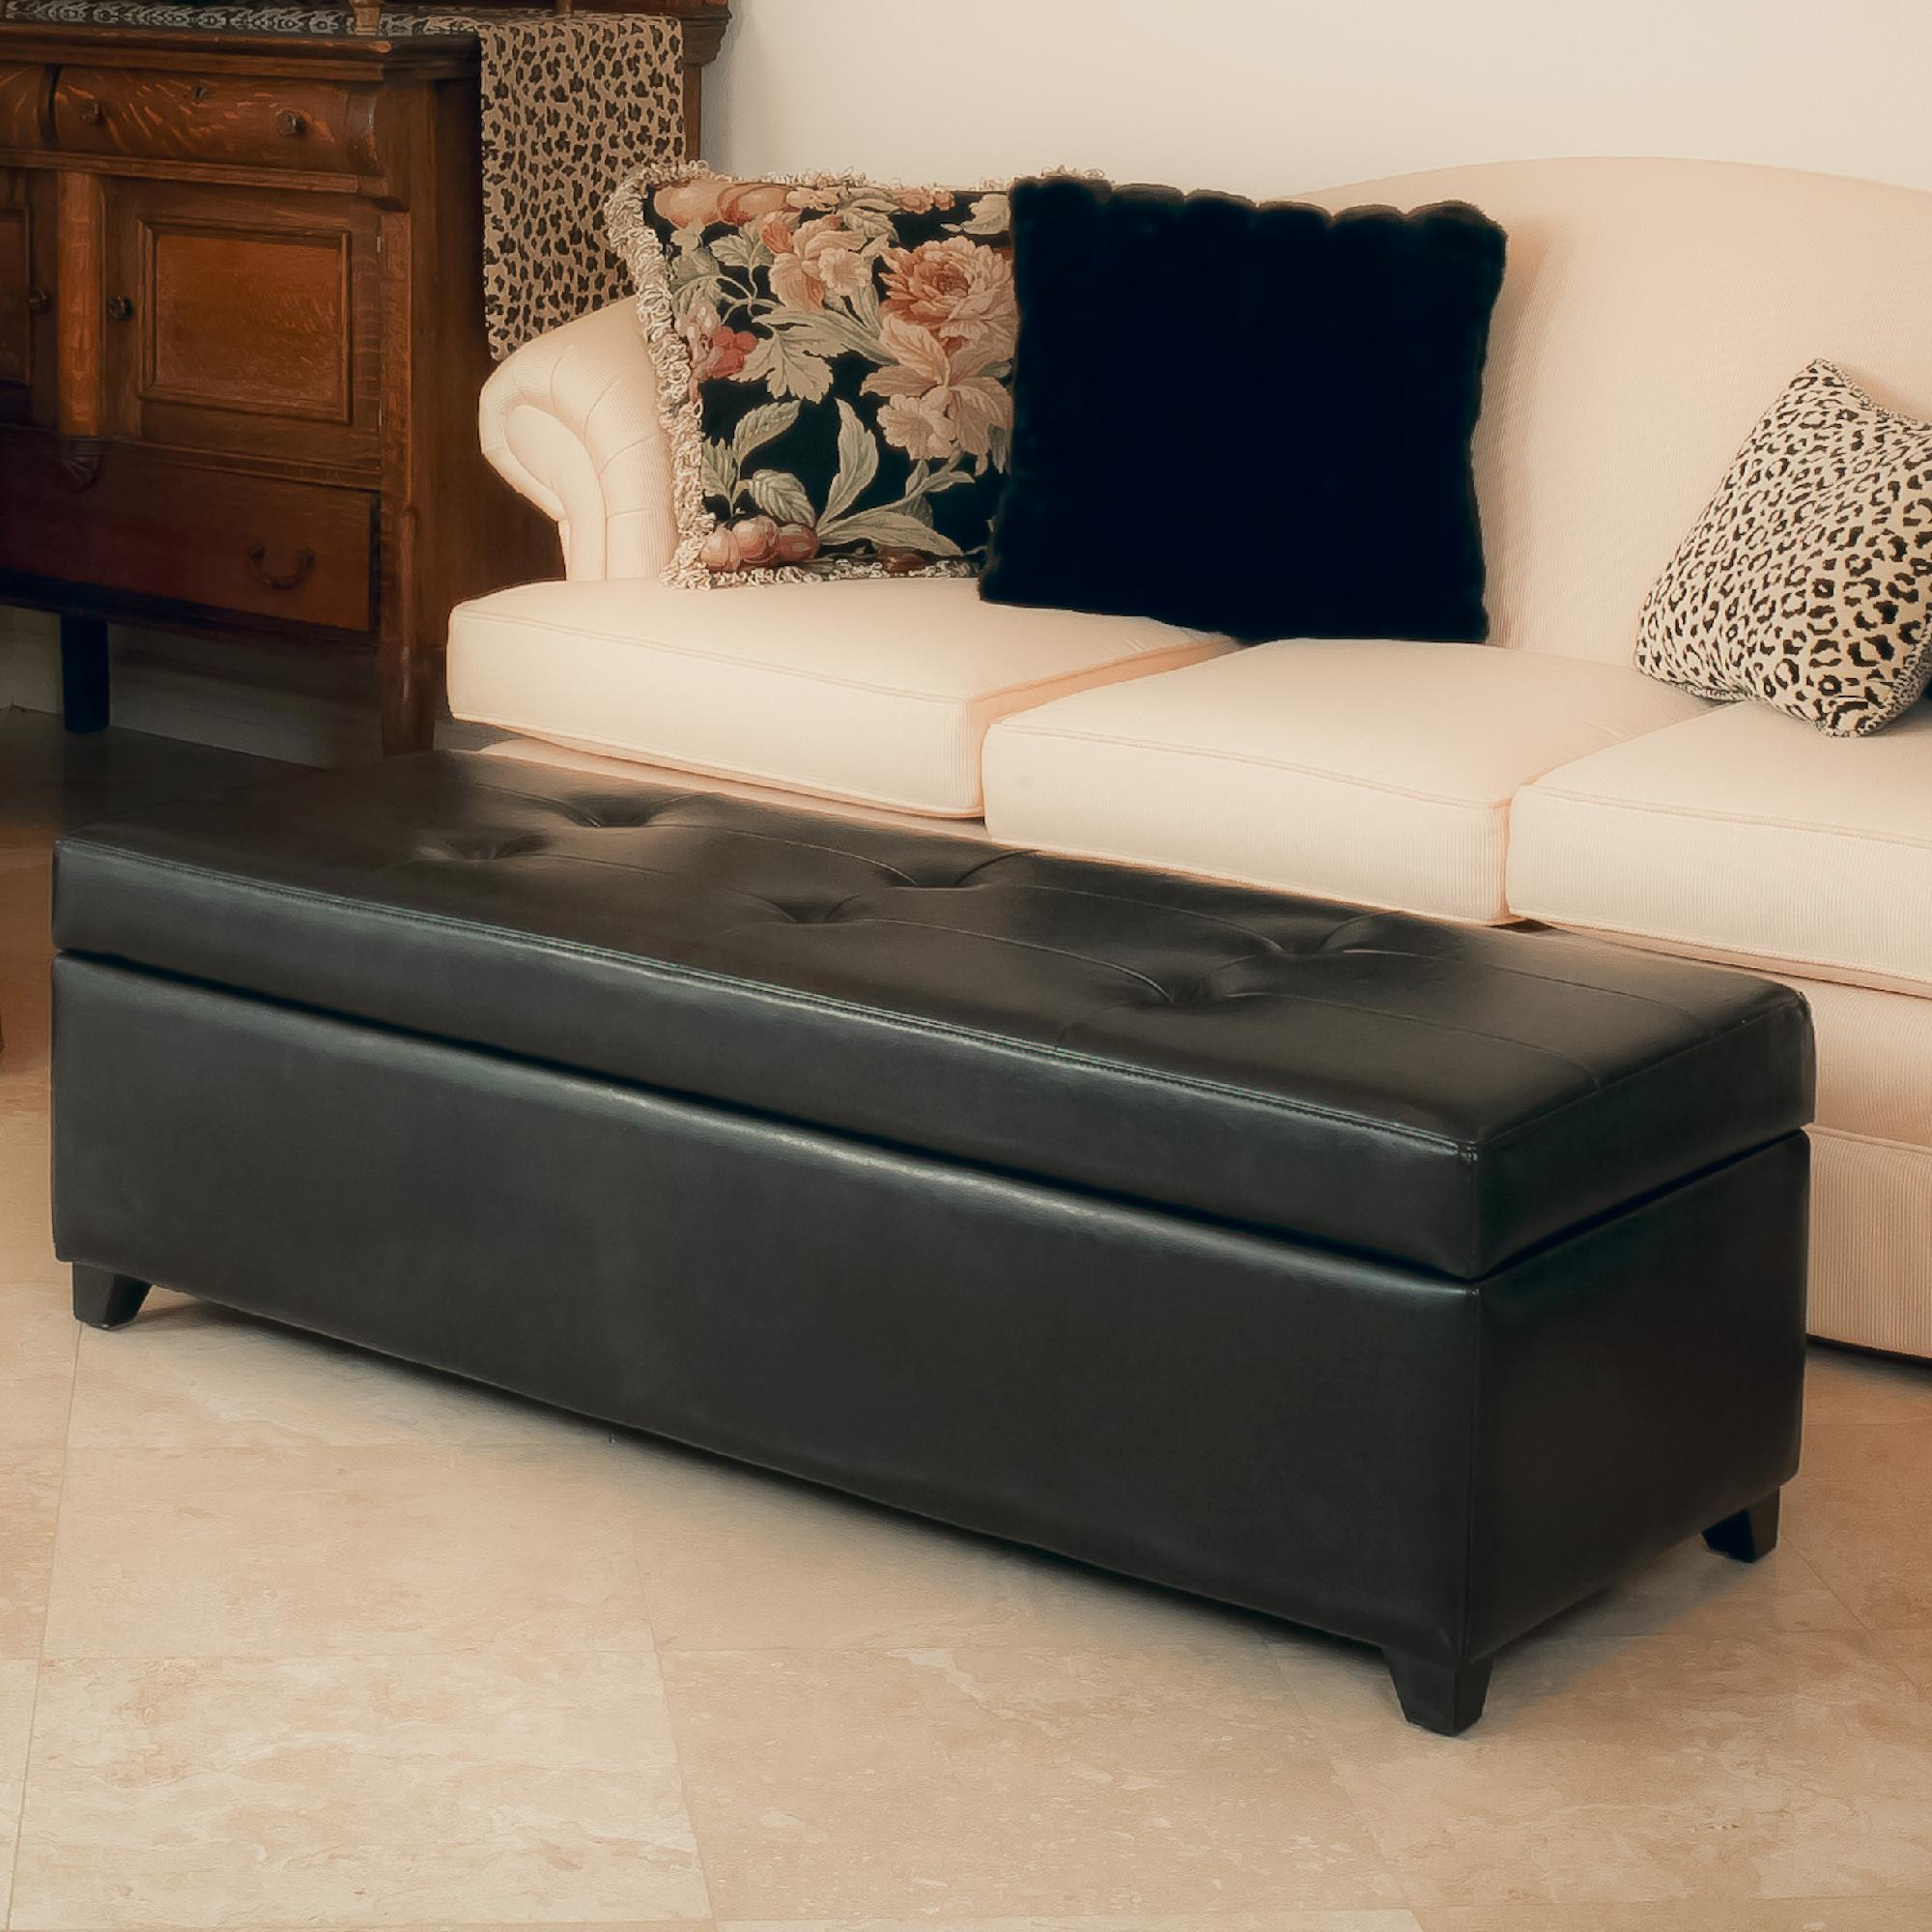 leather sofa repair kit canadian tire big w stretch covers london espresso storage ottoman bench home